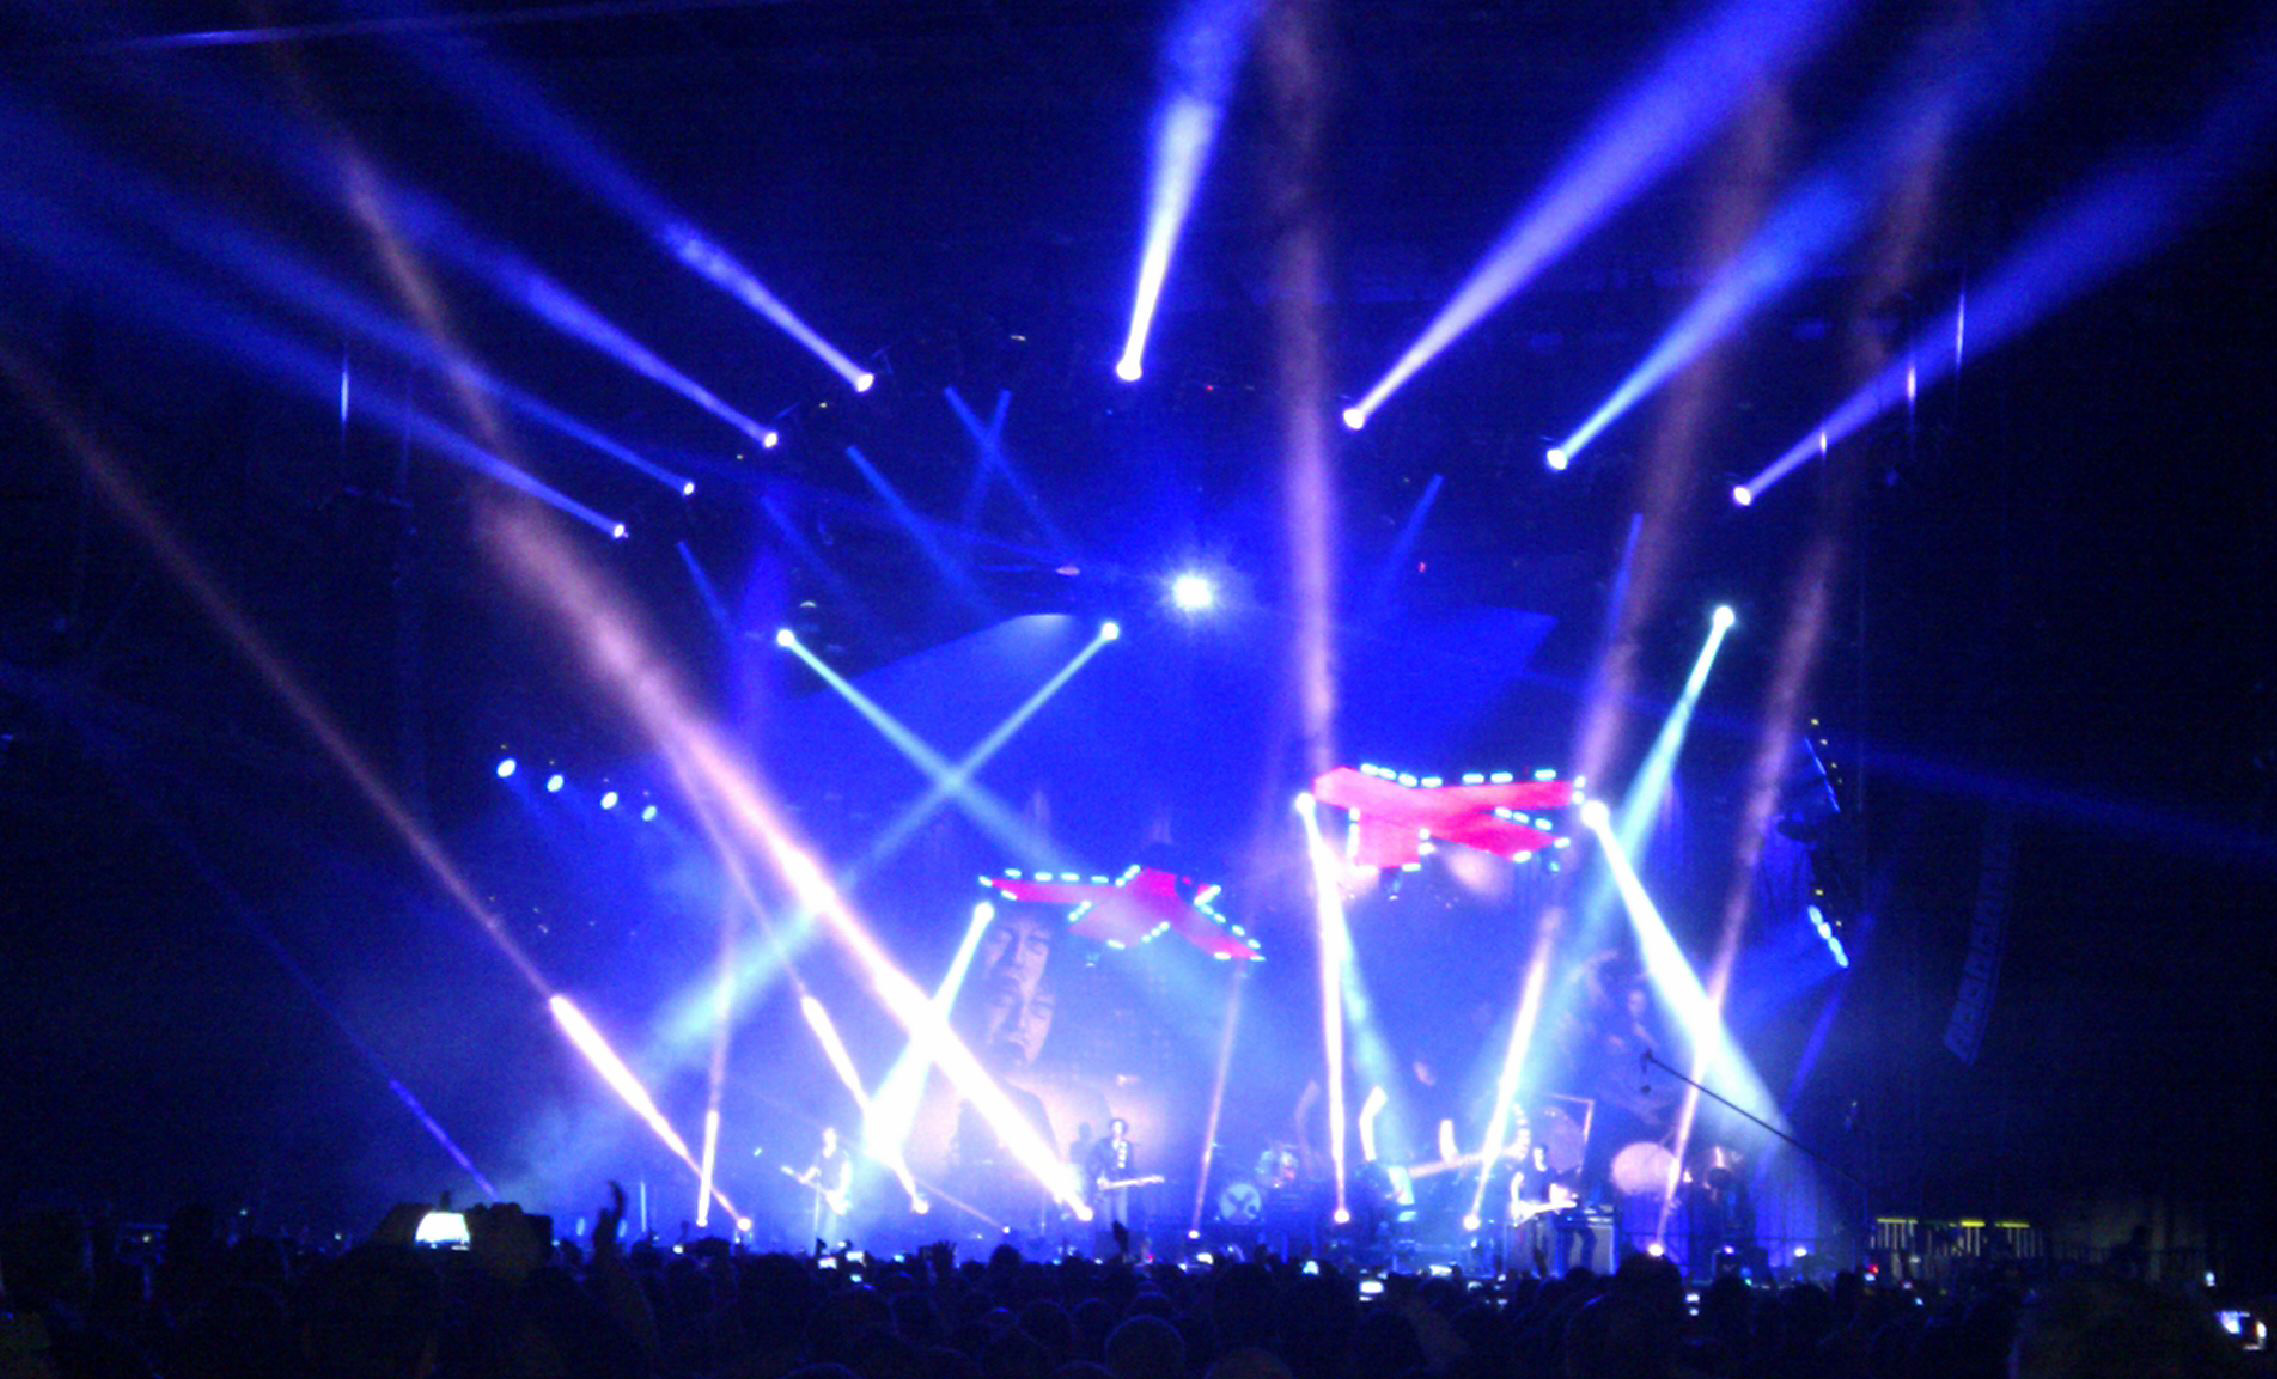 Stage Lighting Effects The overhead lighting rig when